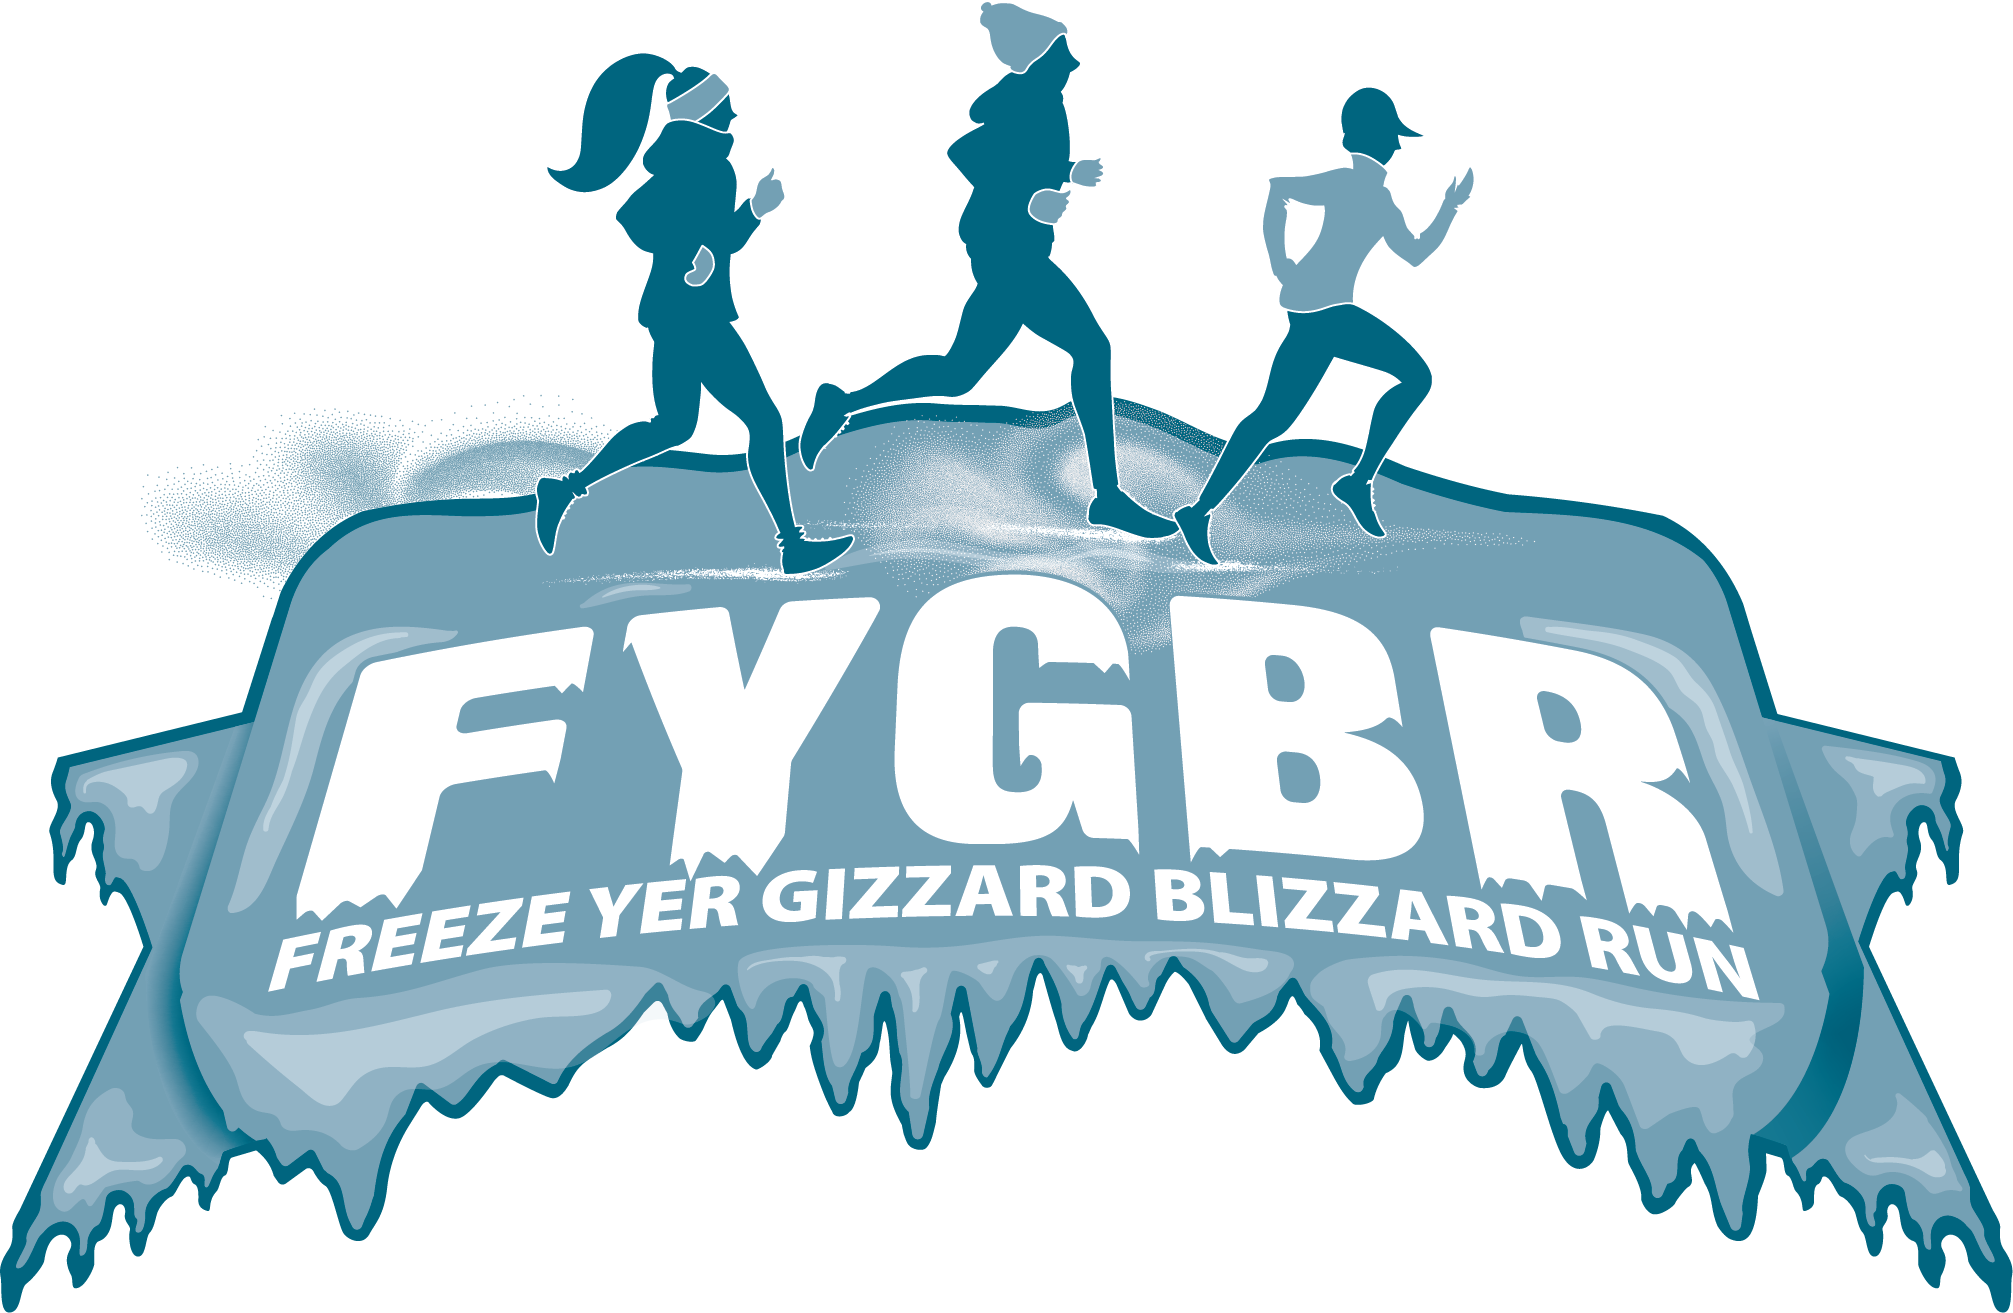 Freeze Yer Gizzard Blizzard Run Registration